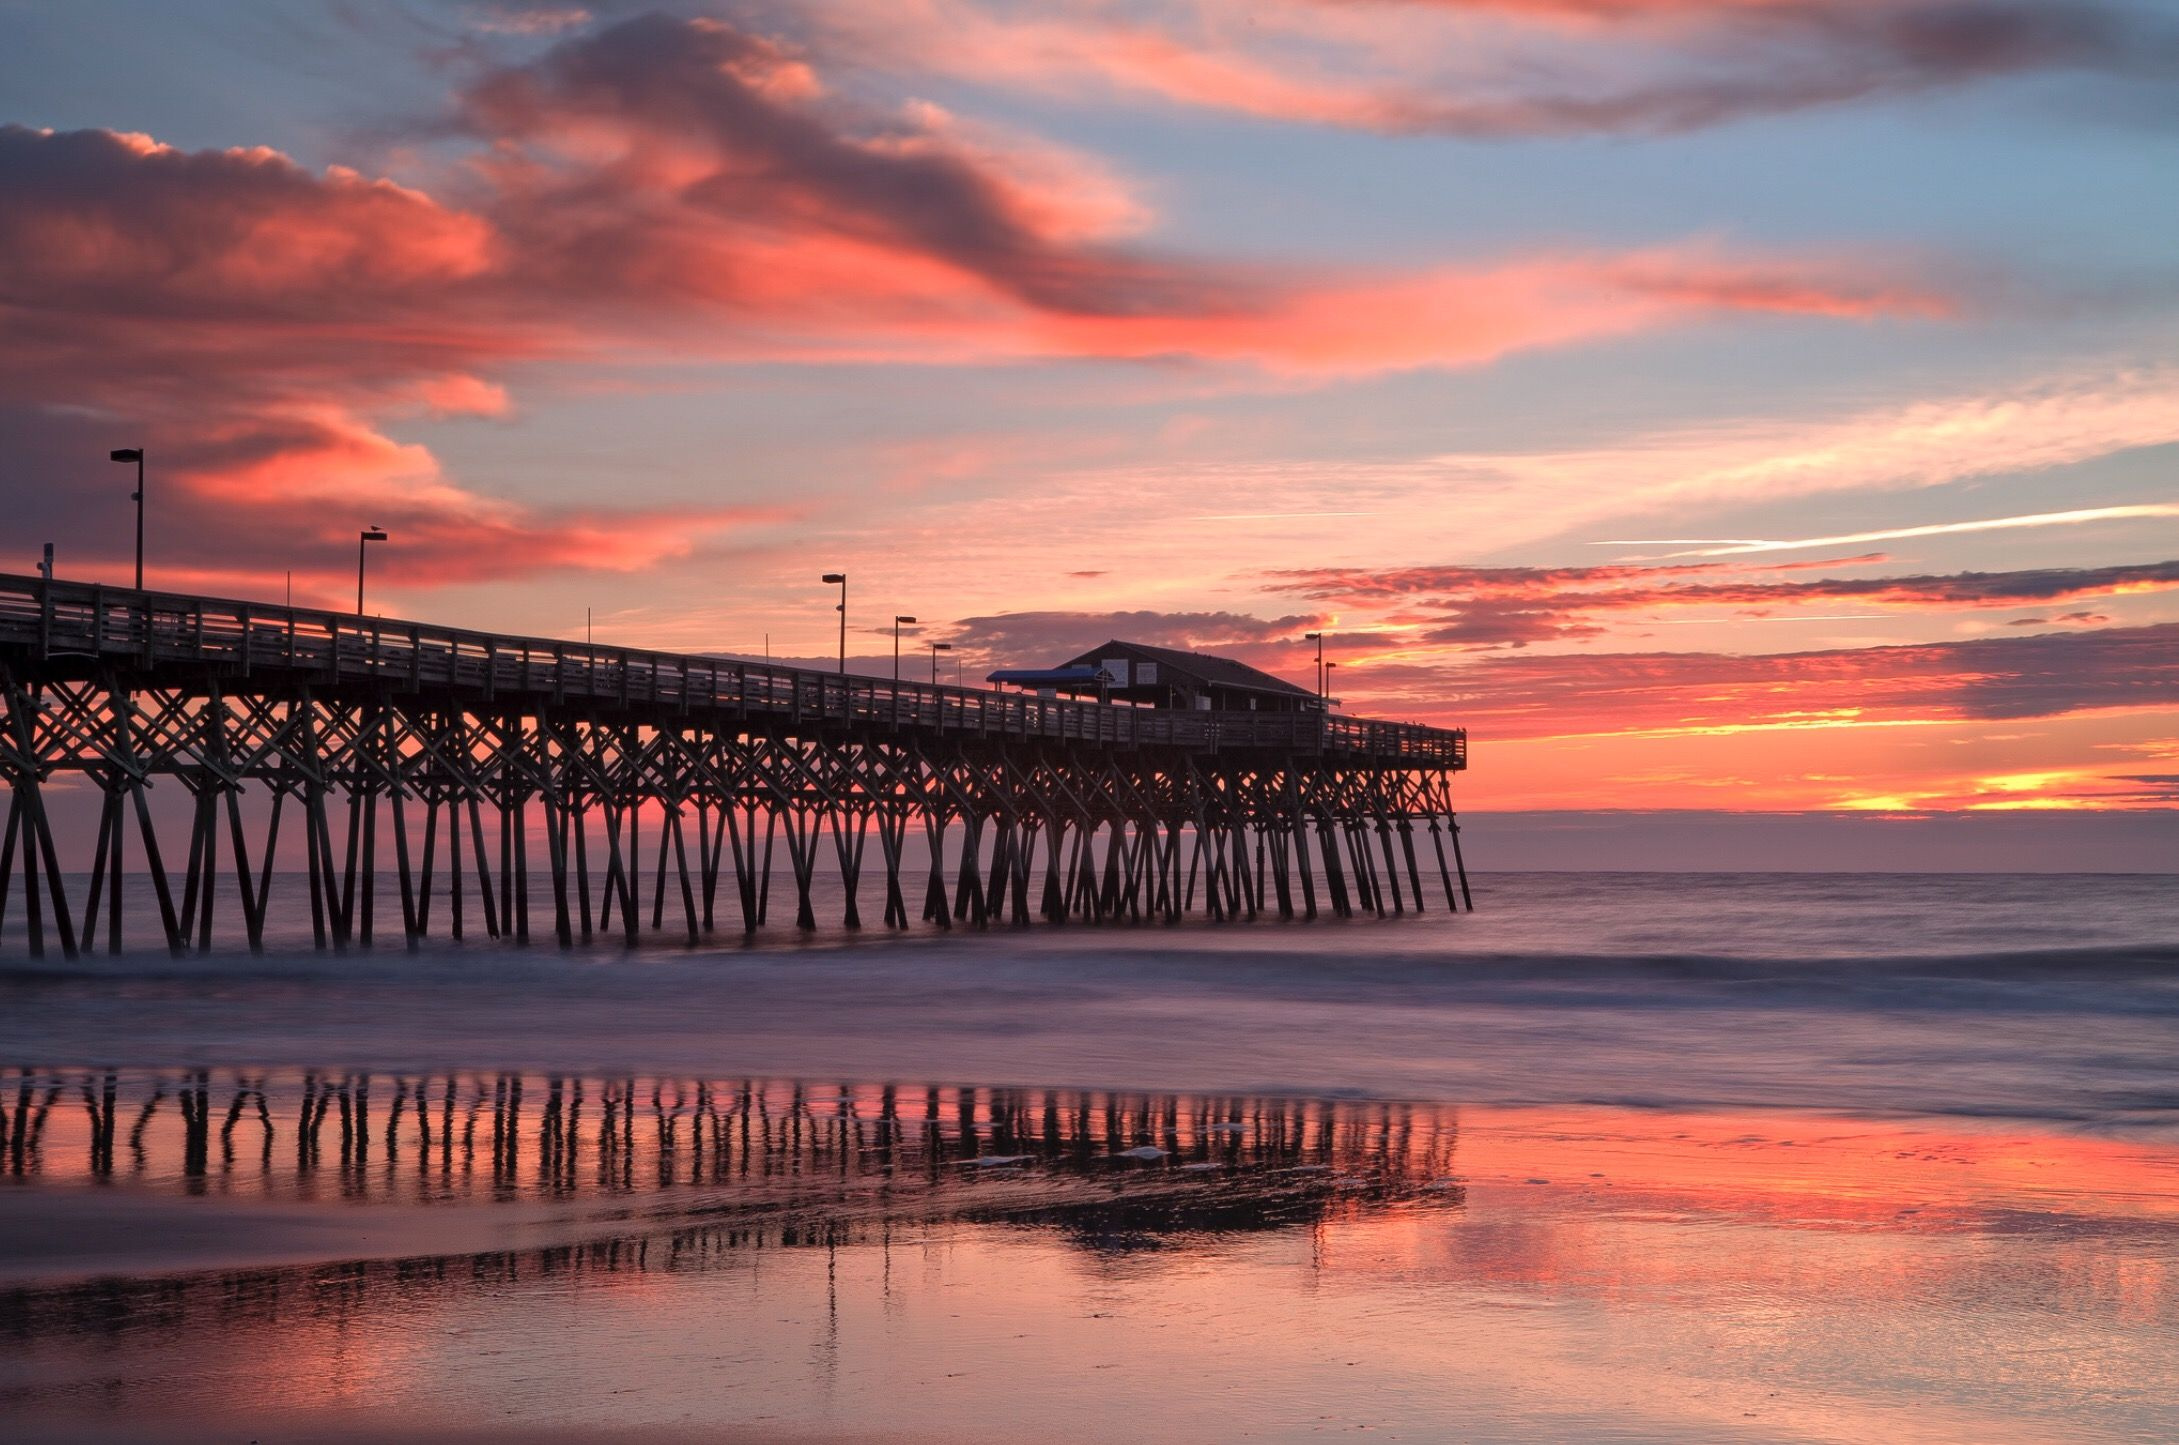 Sunrise At Surfside Pier Myrtle Beach South Carolina Myrtle